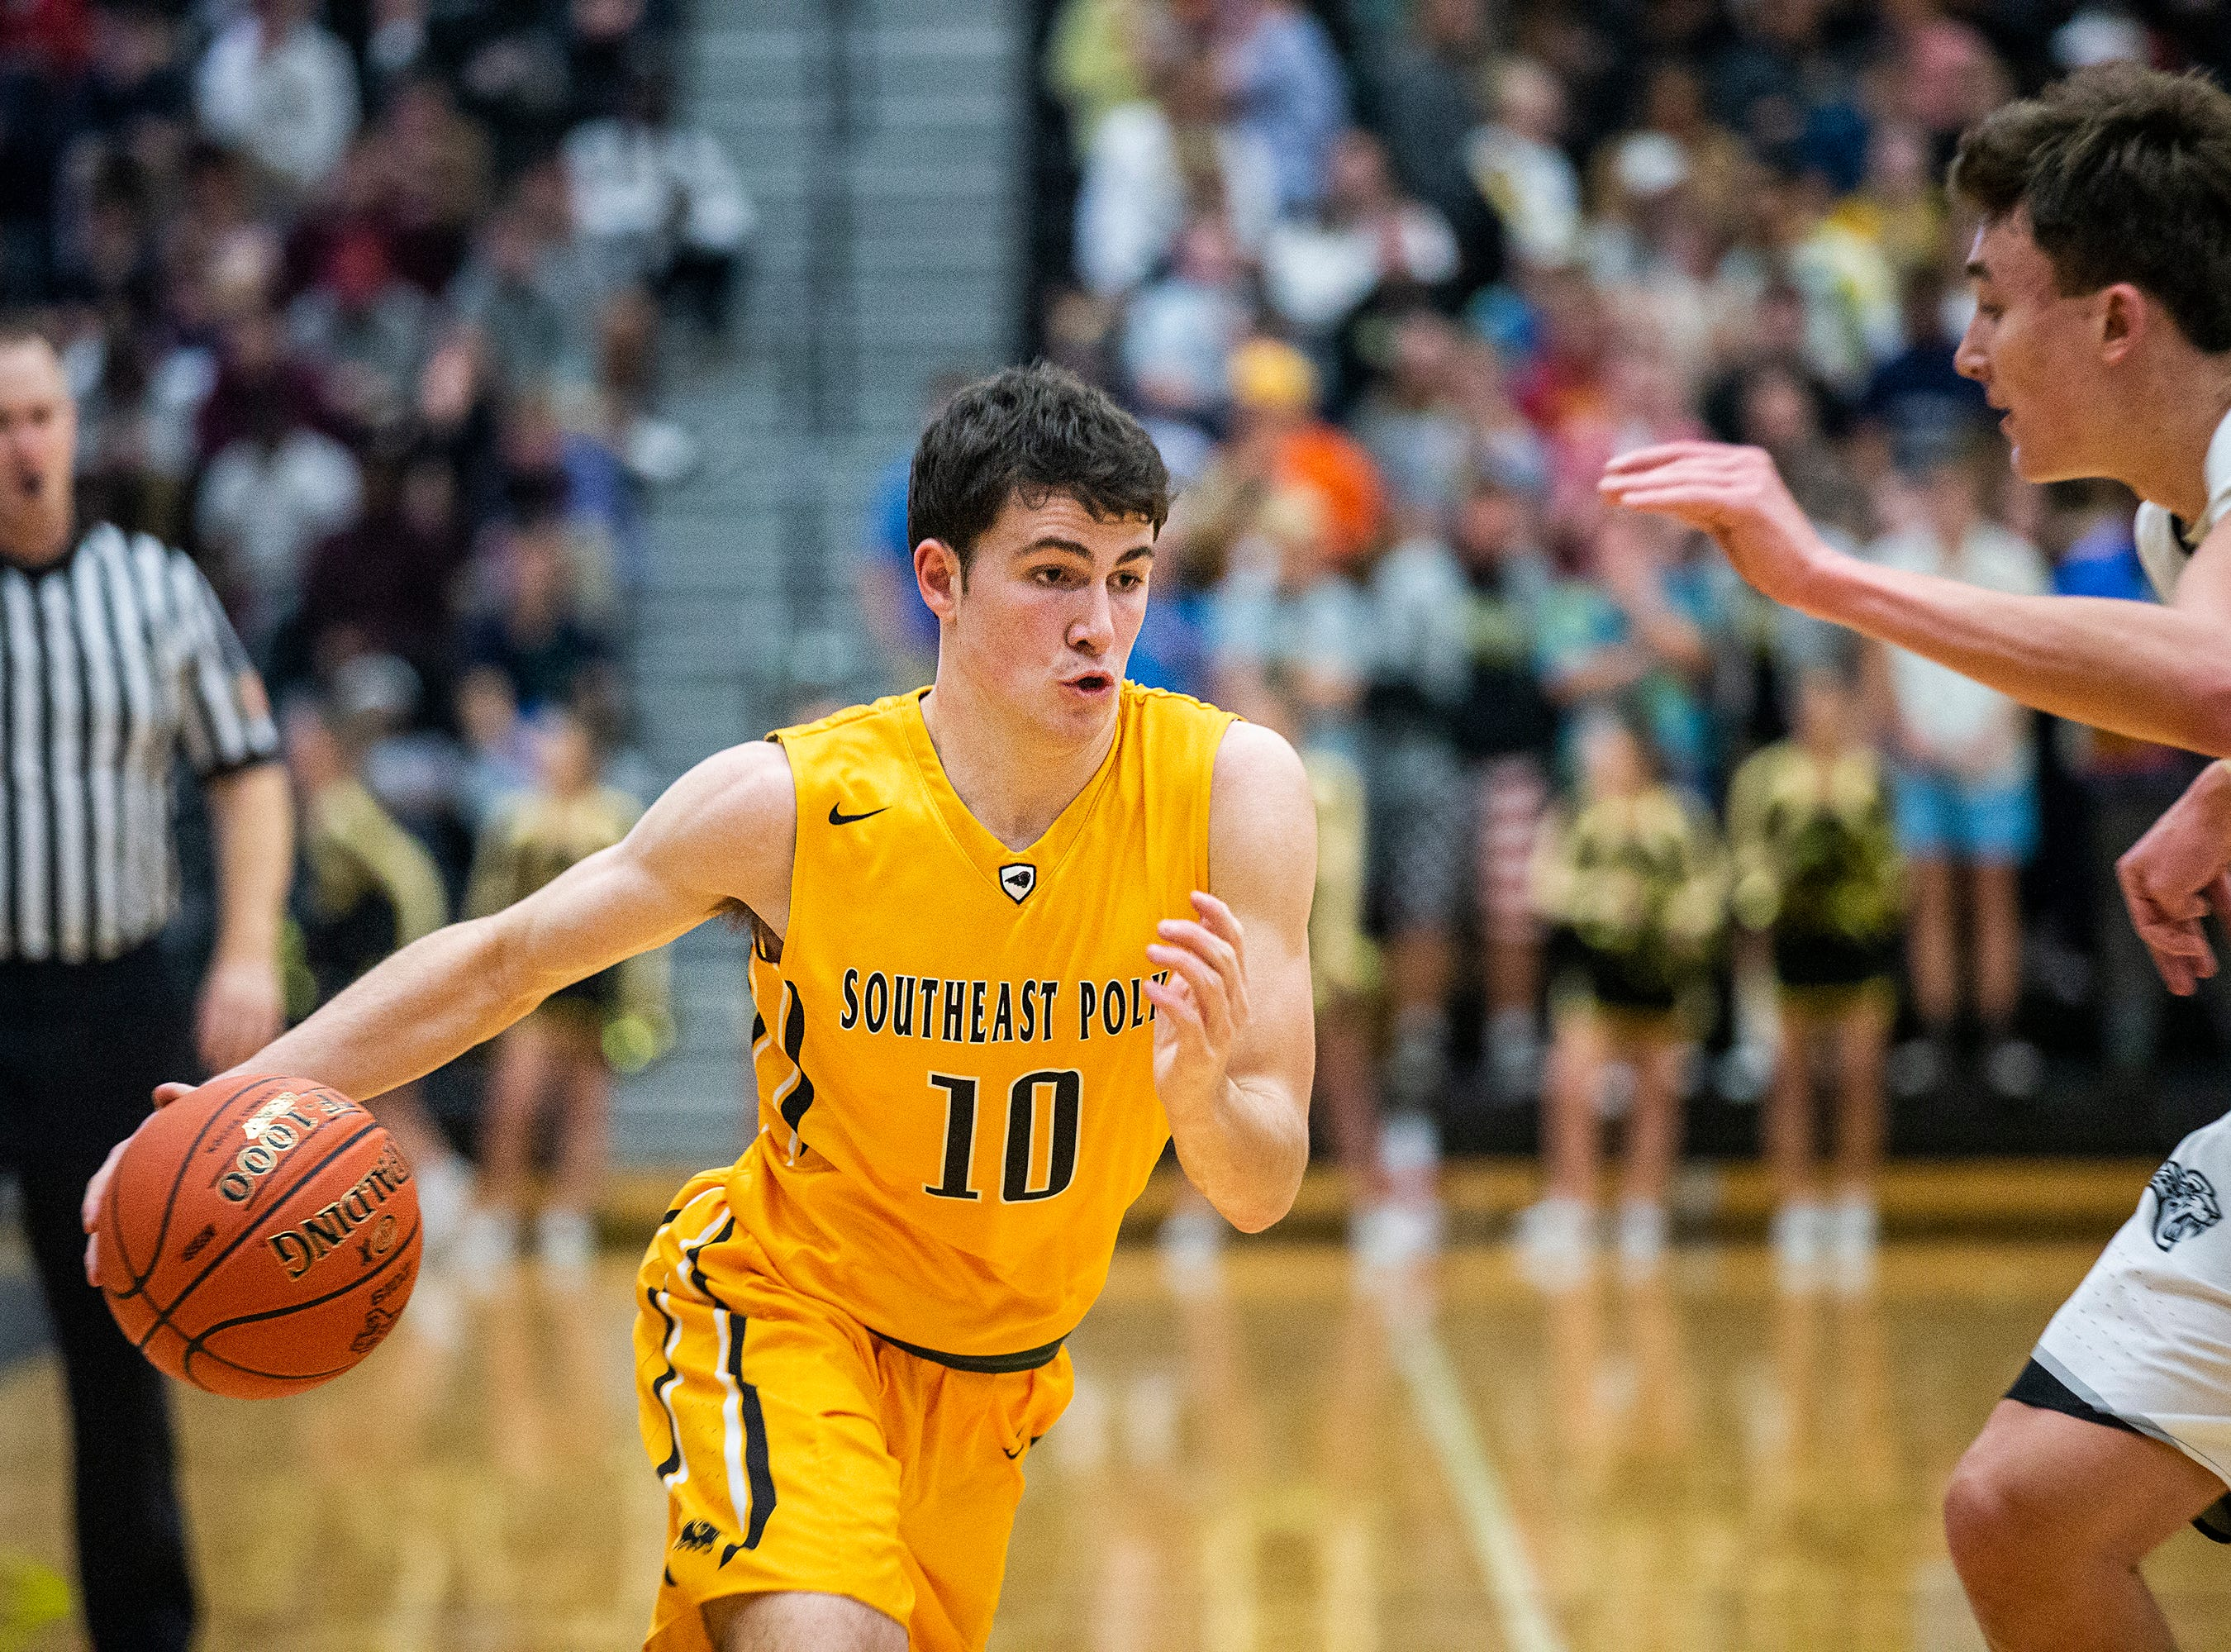 SEP's Daniel Hackbarth brings the ball down the court during the Southeast Polk vs. Ankeny Centennial boy's basketball game on Tuesday, Nov. 27, 2018, at Ankeny Centennial High School.